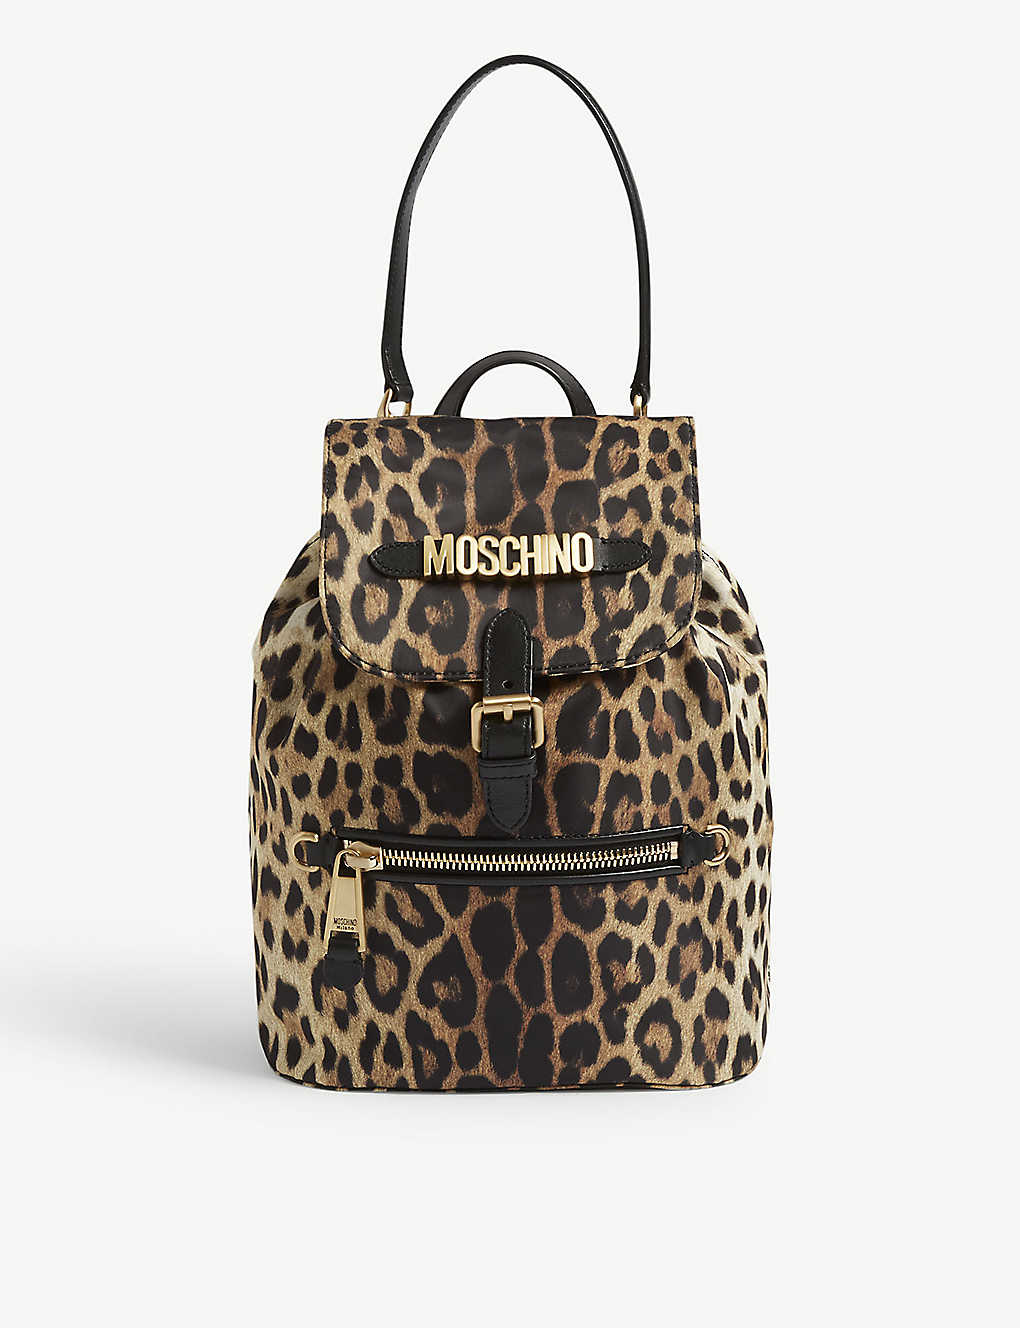 MOSCHINO - Leopard print nylon backpack  c7cd7632edd7c